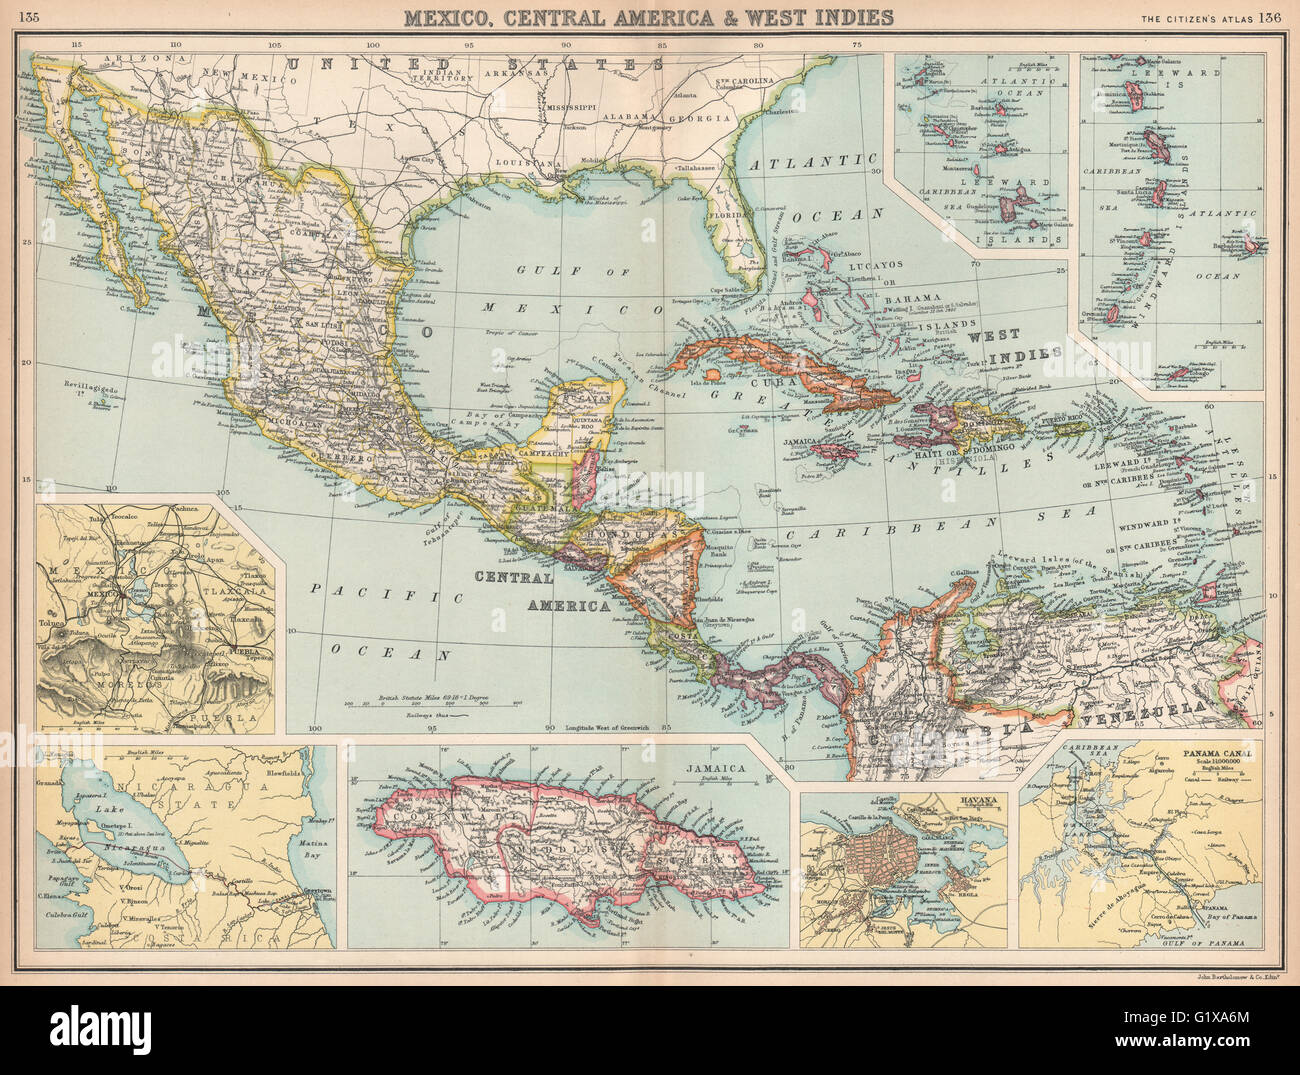 Mexico central america west indies panama proposed nicaragua mexico central america west indies panama proposed nicaragua canals 1912 map gumiabroncs Image collections